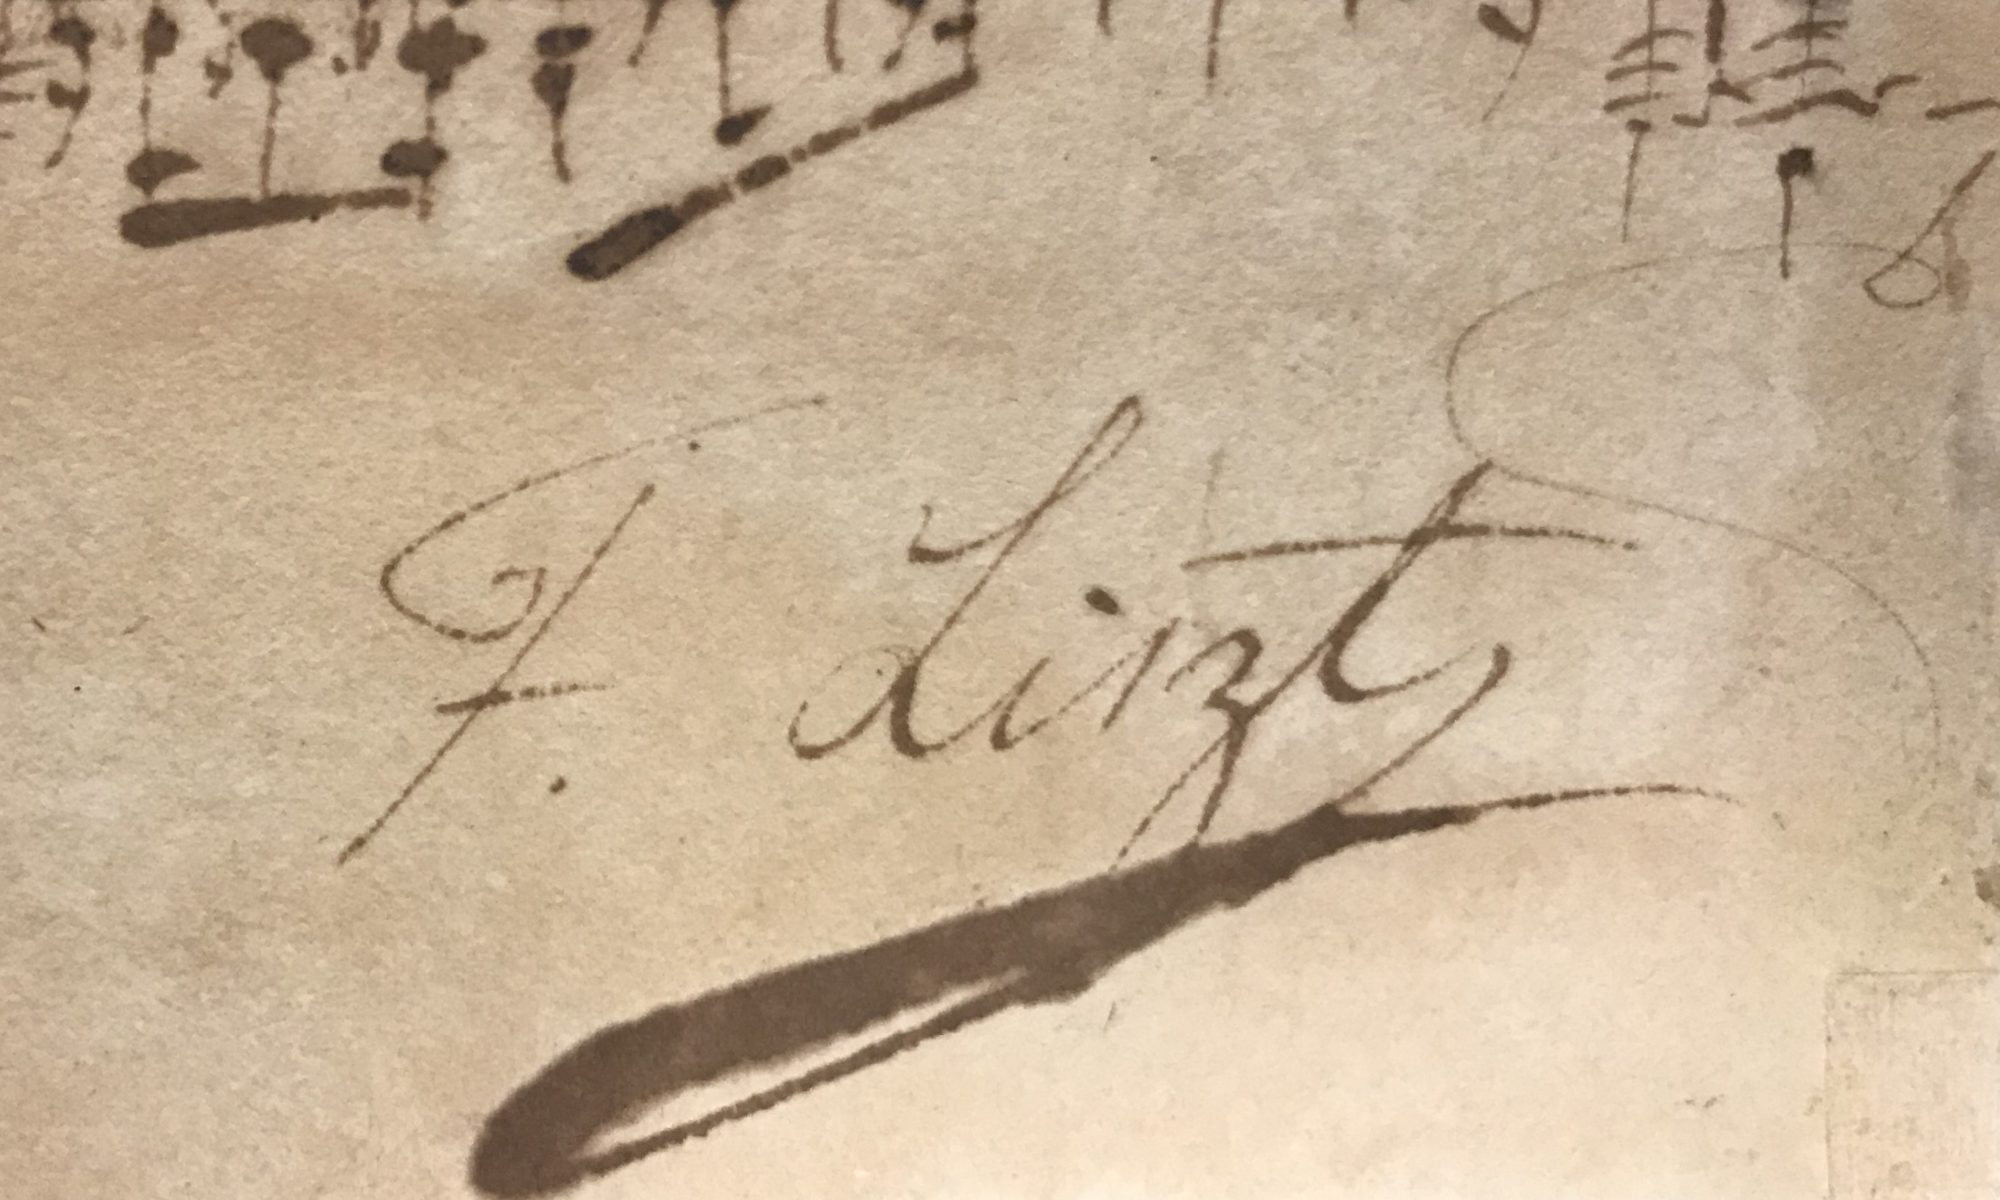 Faded ink signature on parchment